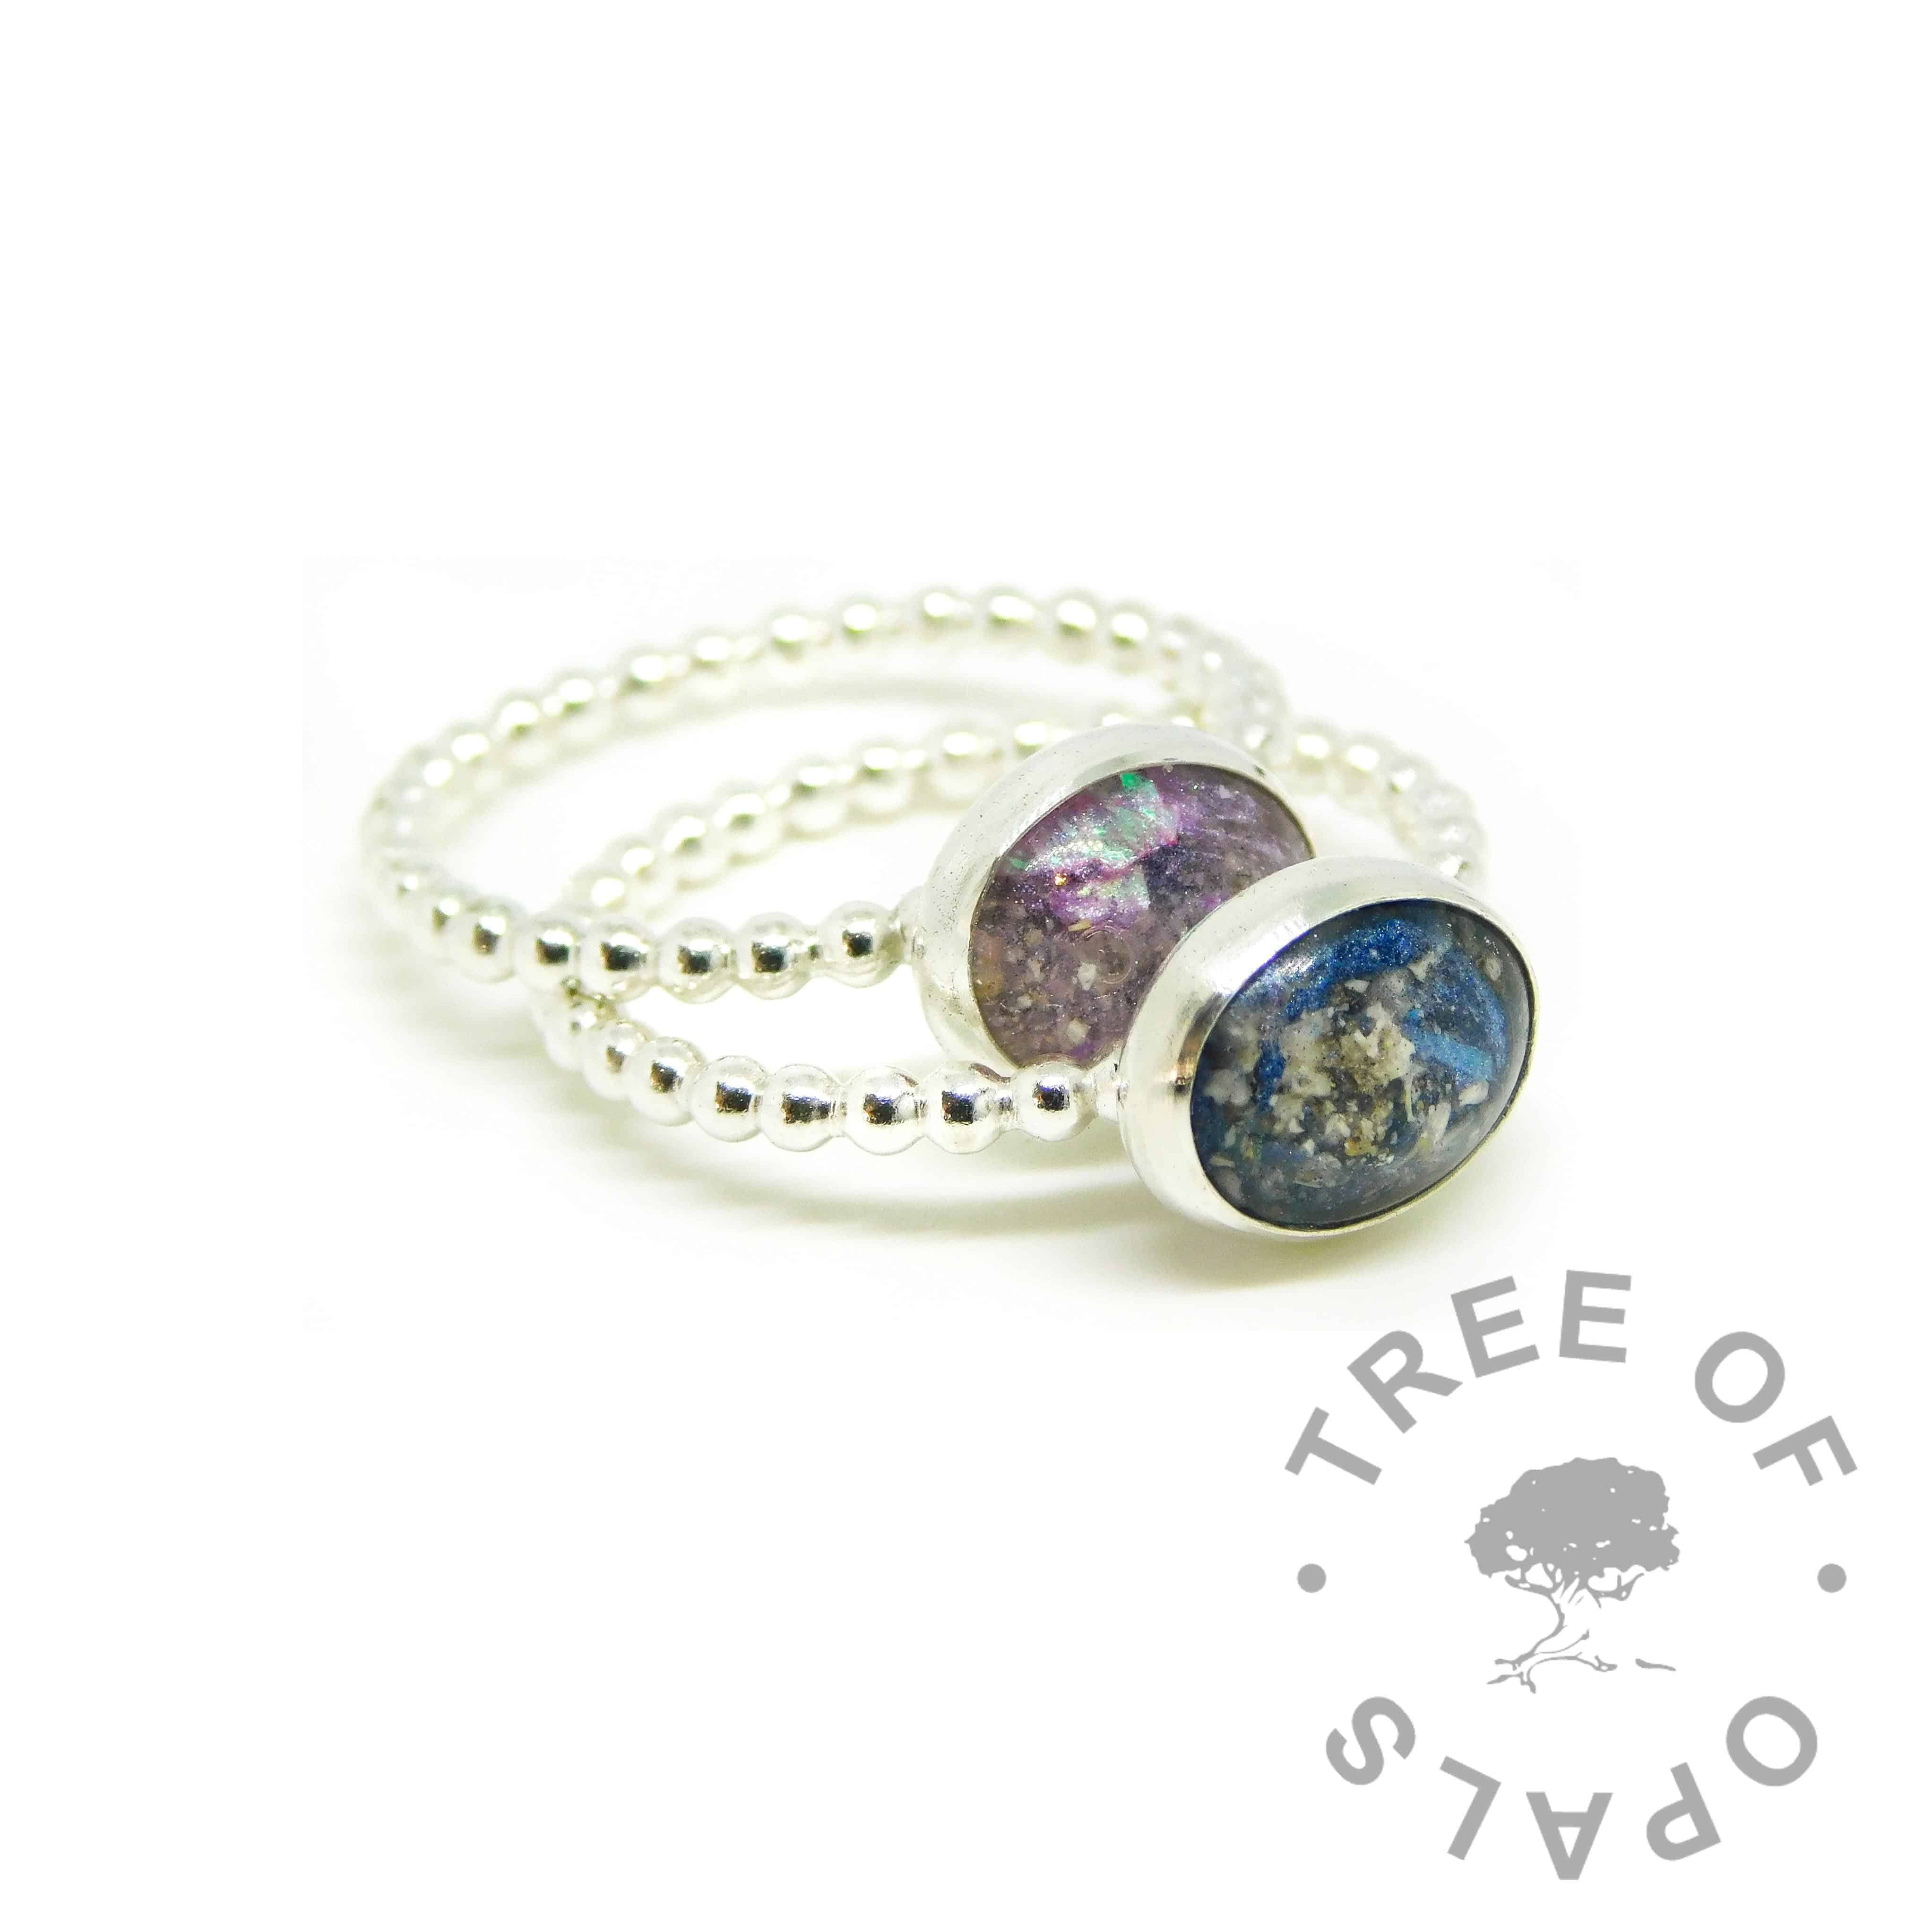 blue and purple ashes rings, Aegean blue and orchid purple resin sparkle mix, bubble wire Argentium silver bands